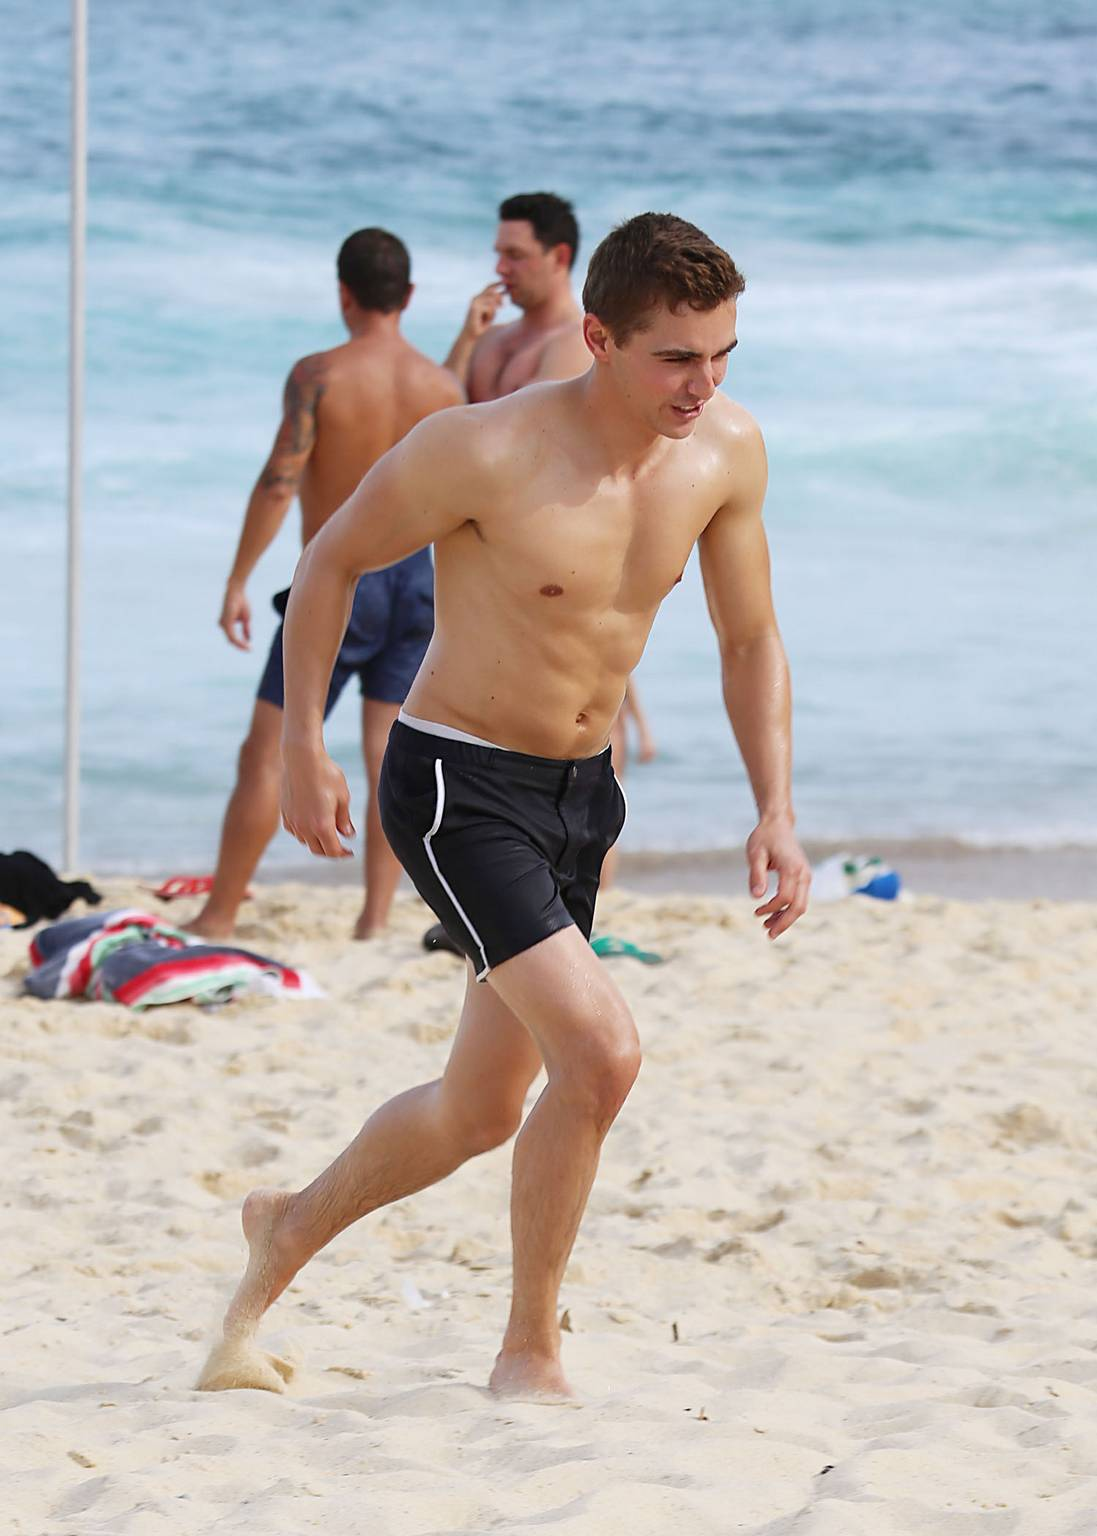 The Stars Come Out To Play Dave Franco - New Shirtless -7582